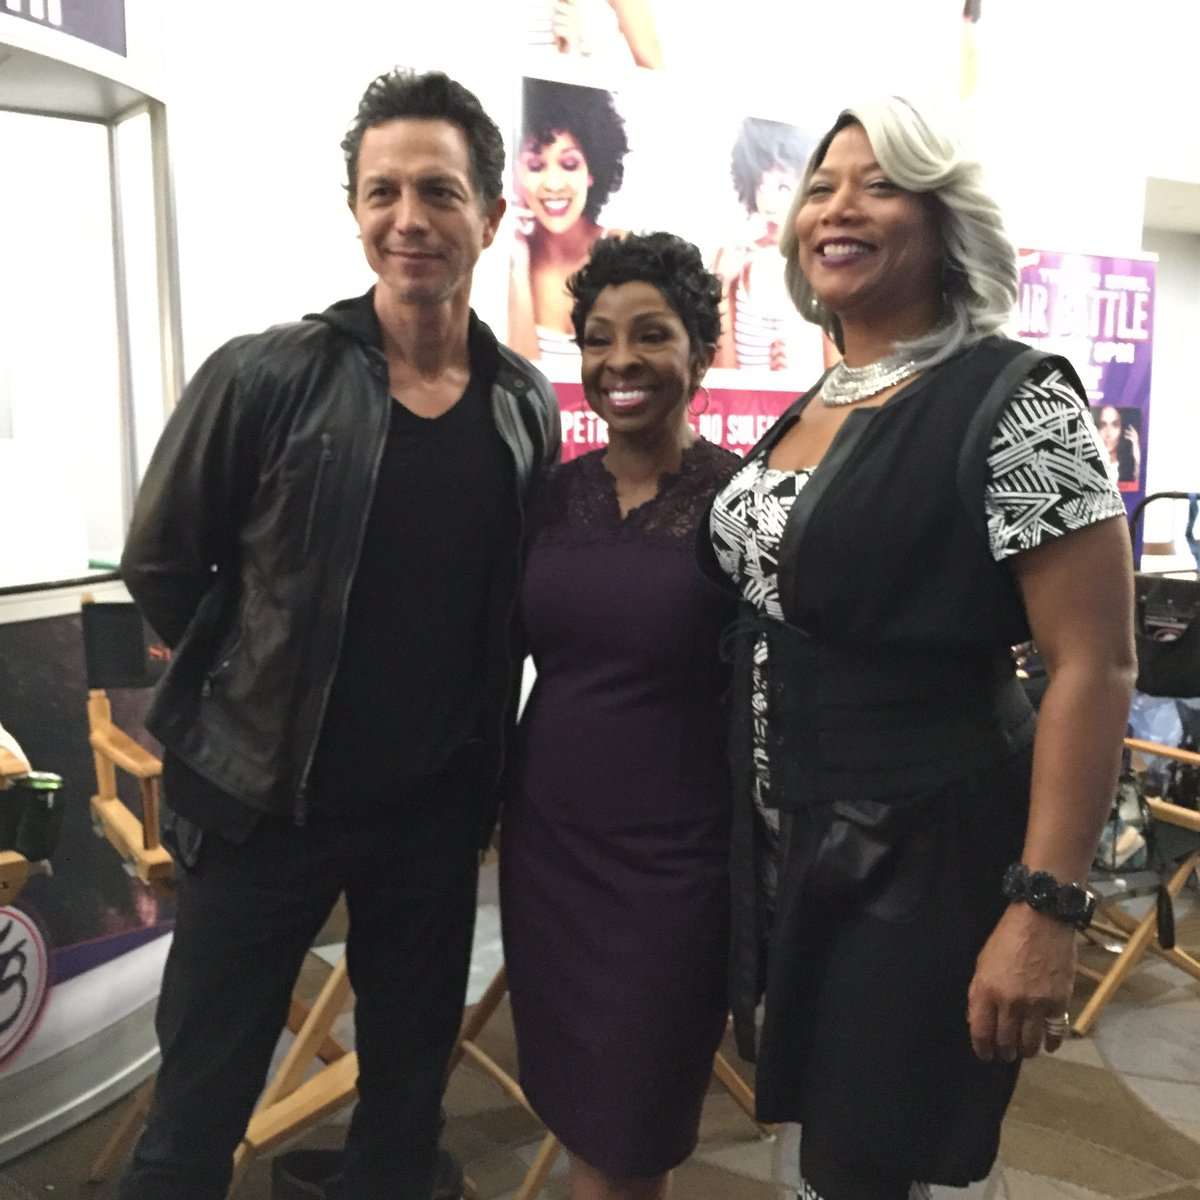 Loved having the amazing @MsGladysKnight on set with us for this episode! #STAR https://t.co/du2RMLDdW1